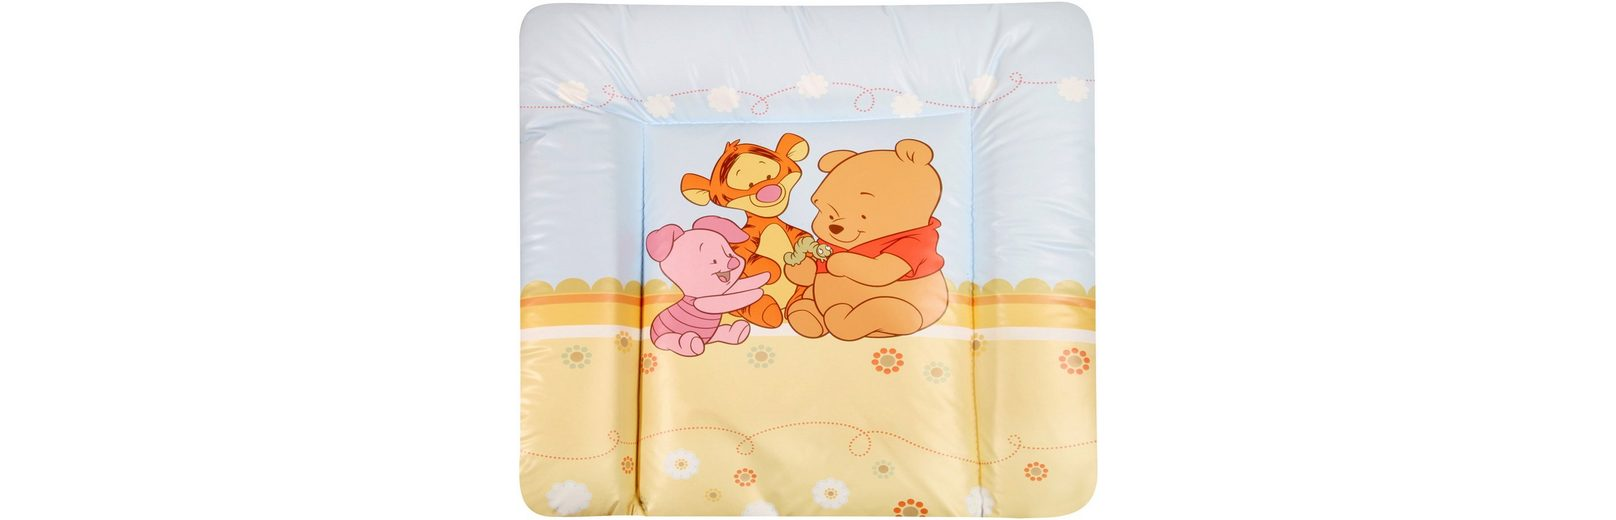 Disney Folien - Wickelauflage »Pooh and Friends«